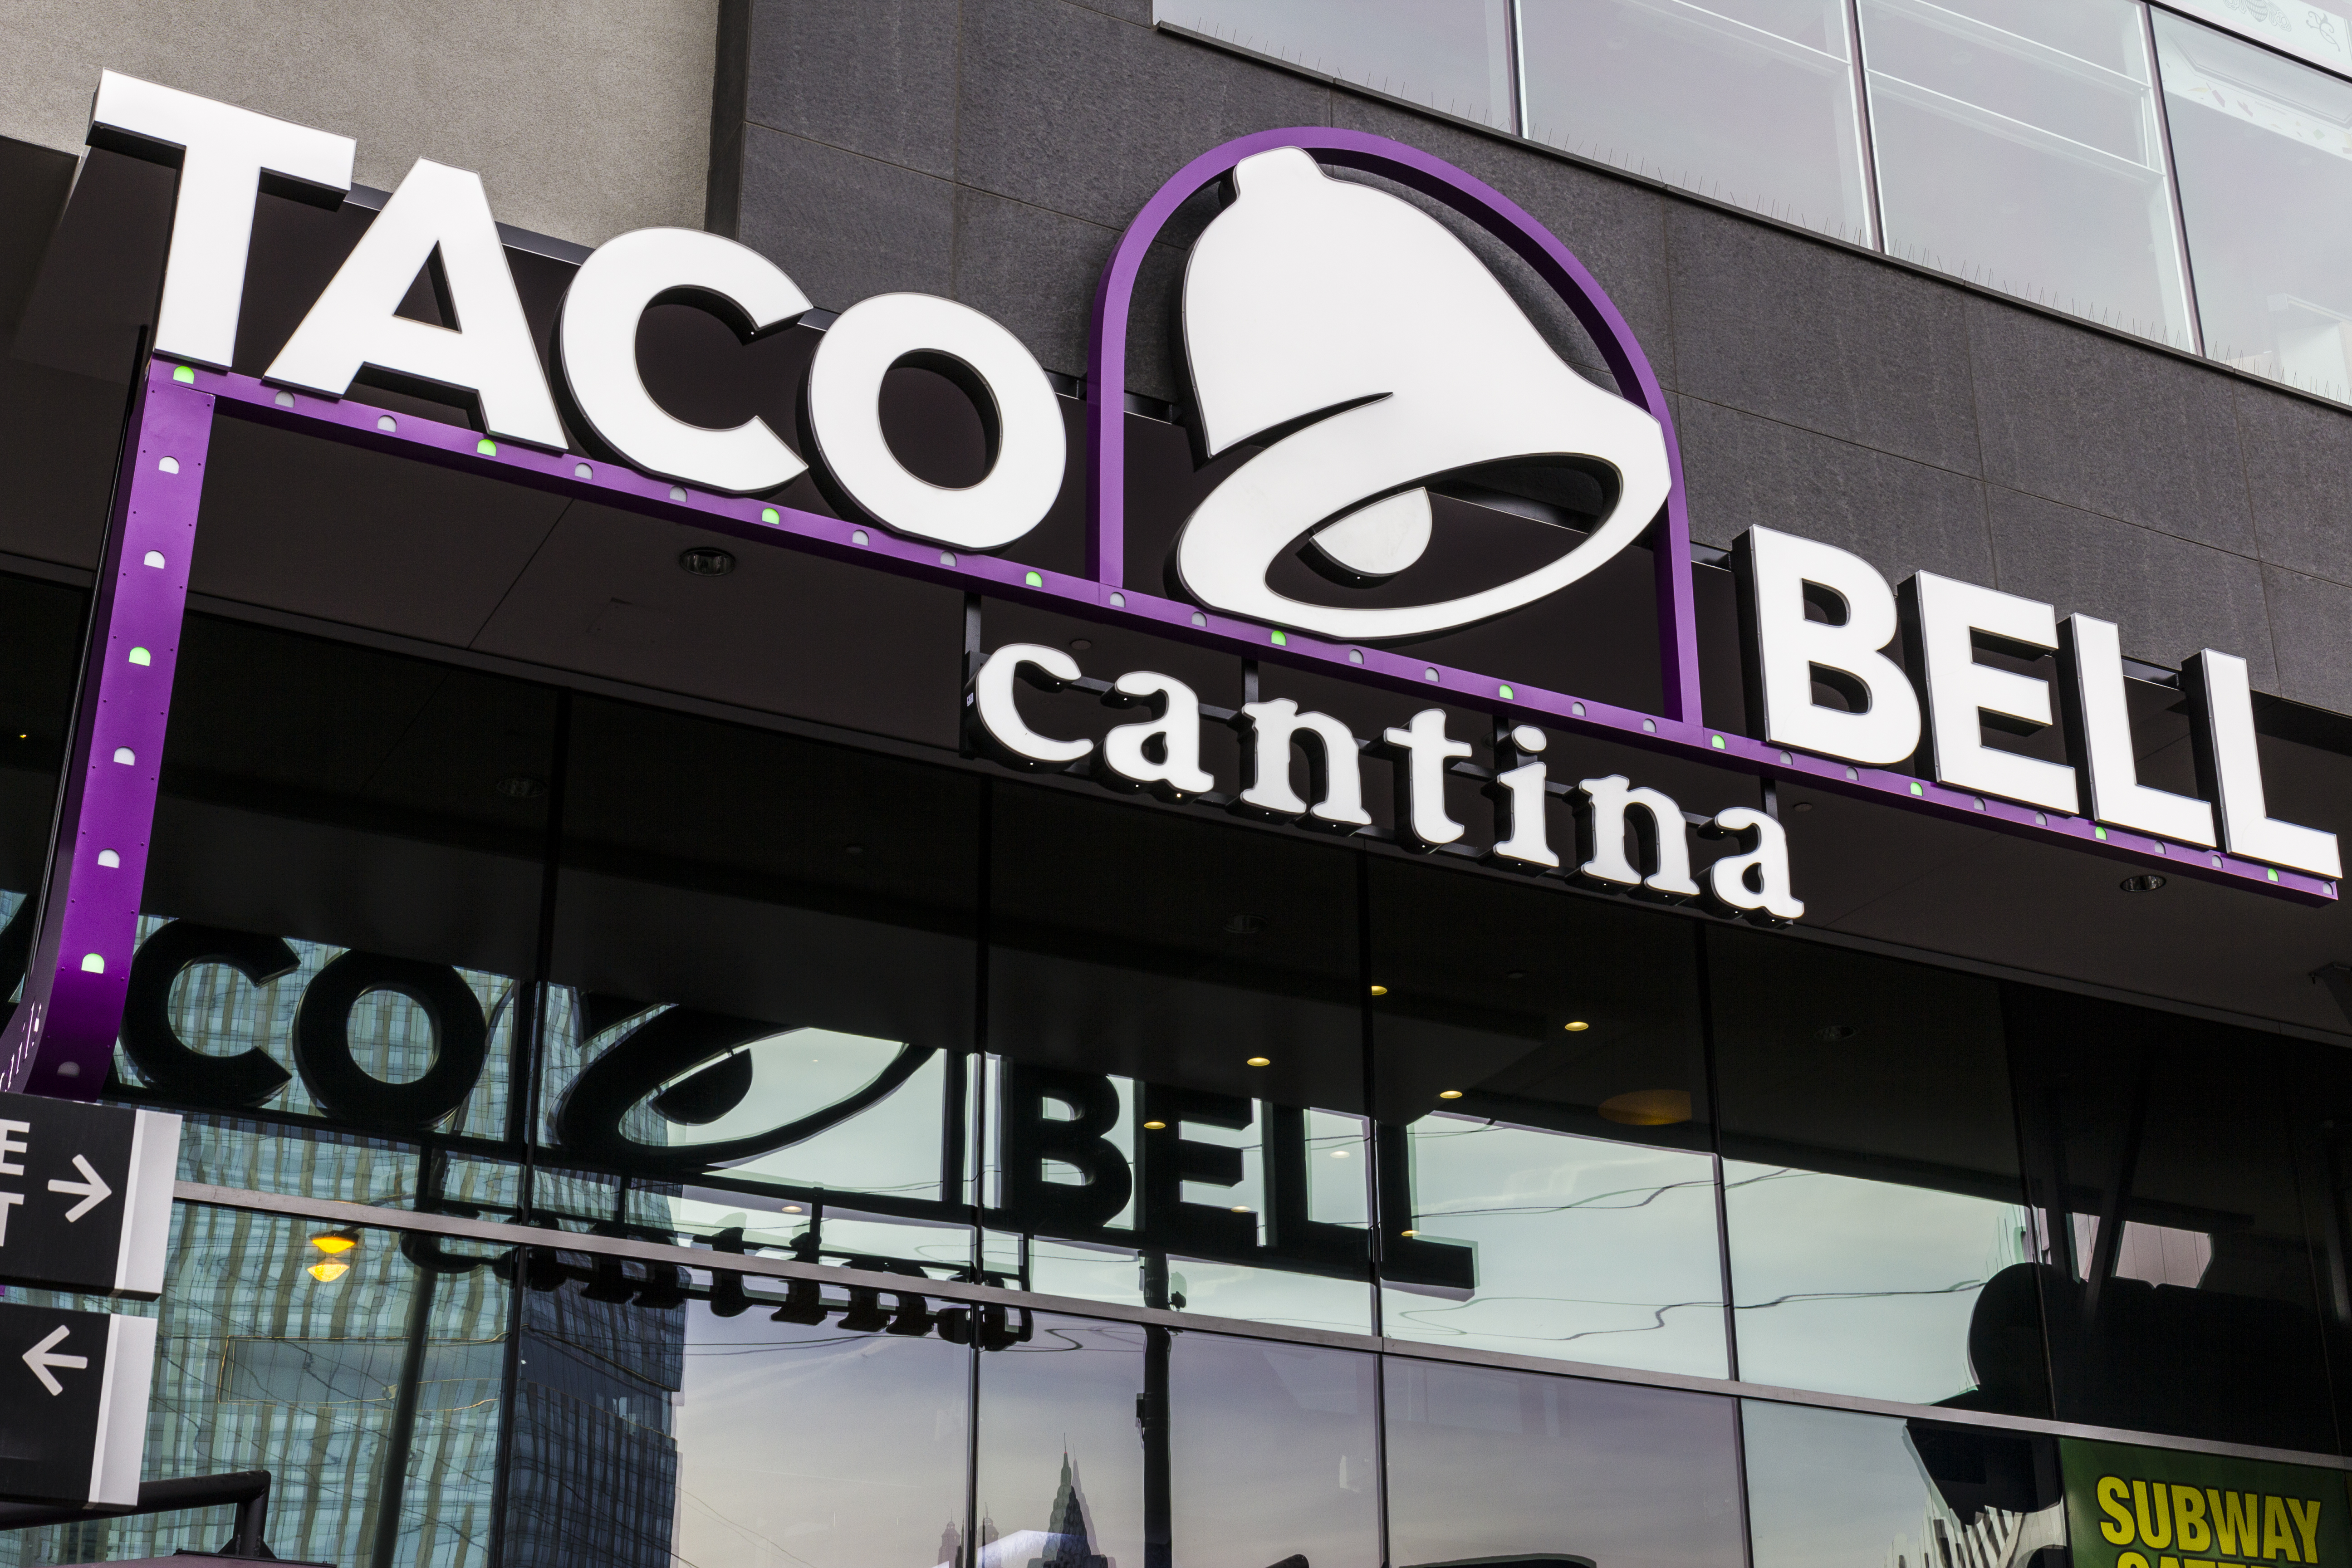 food service market research taco bell cantina